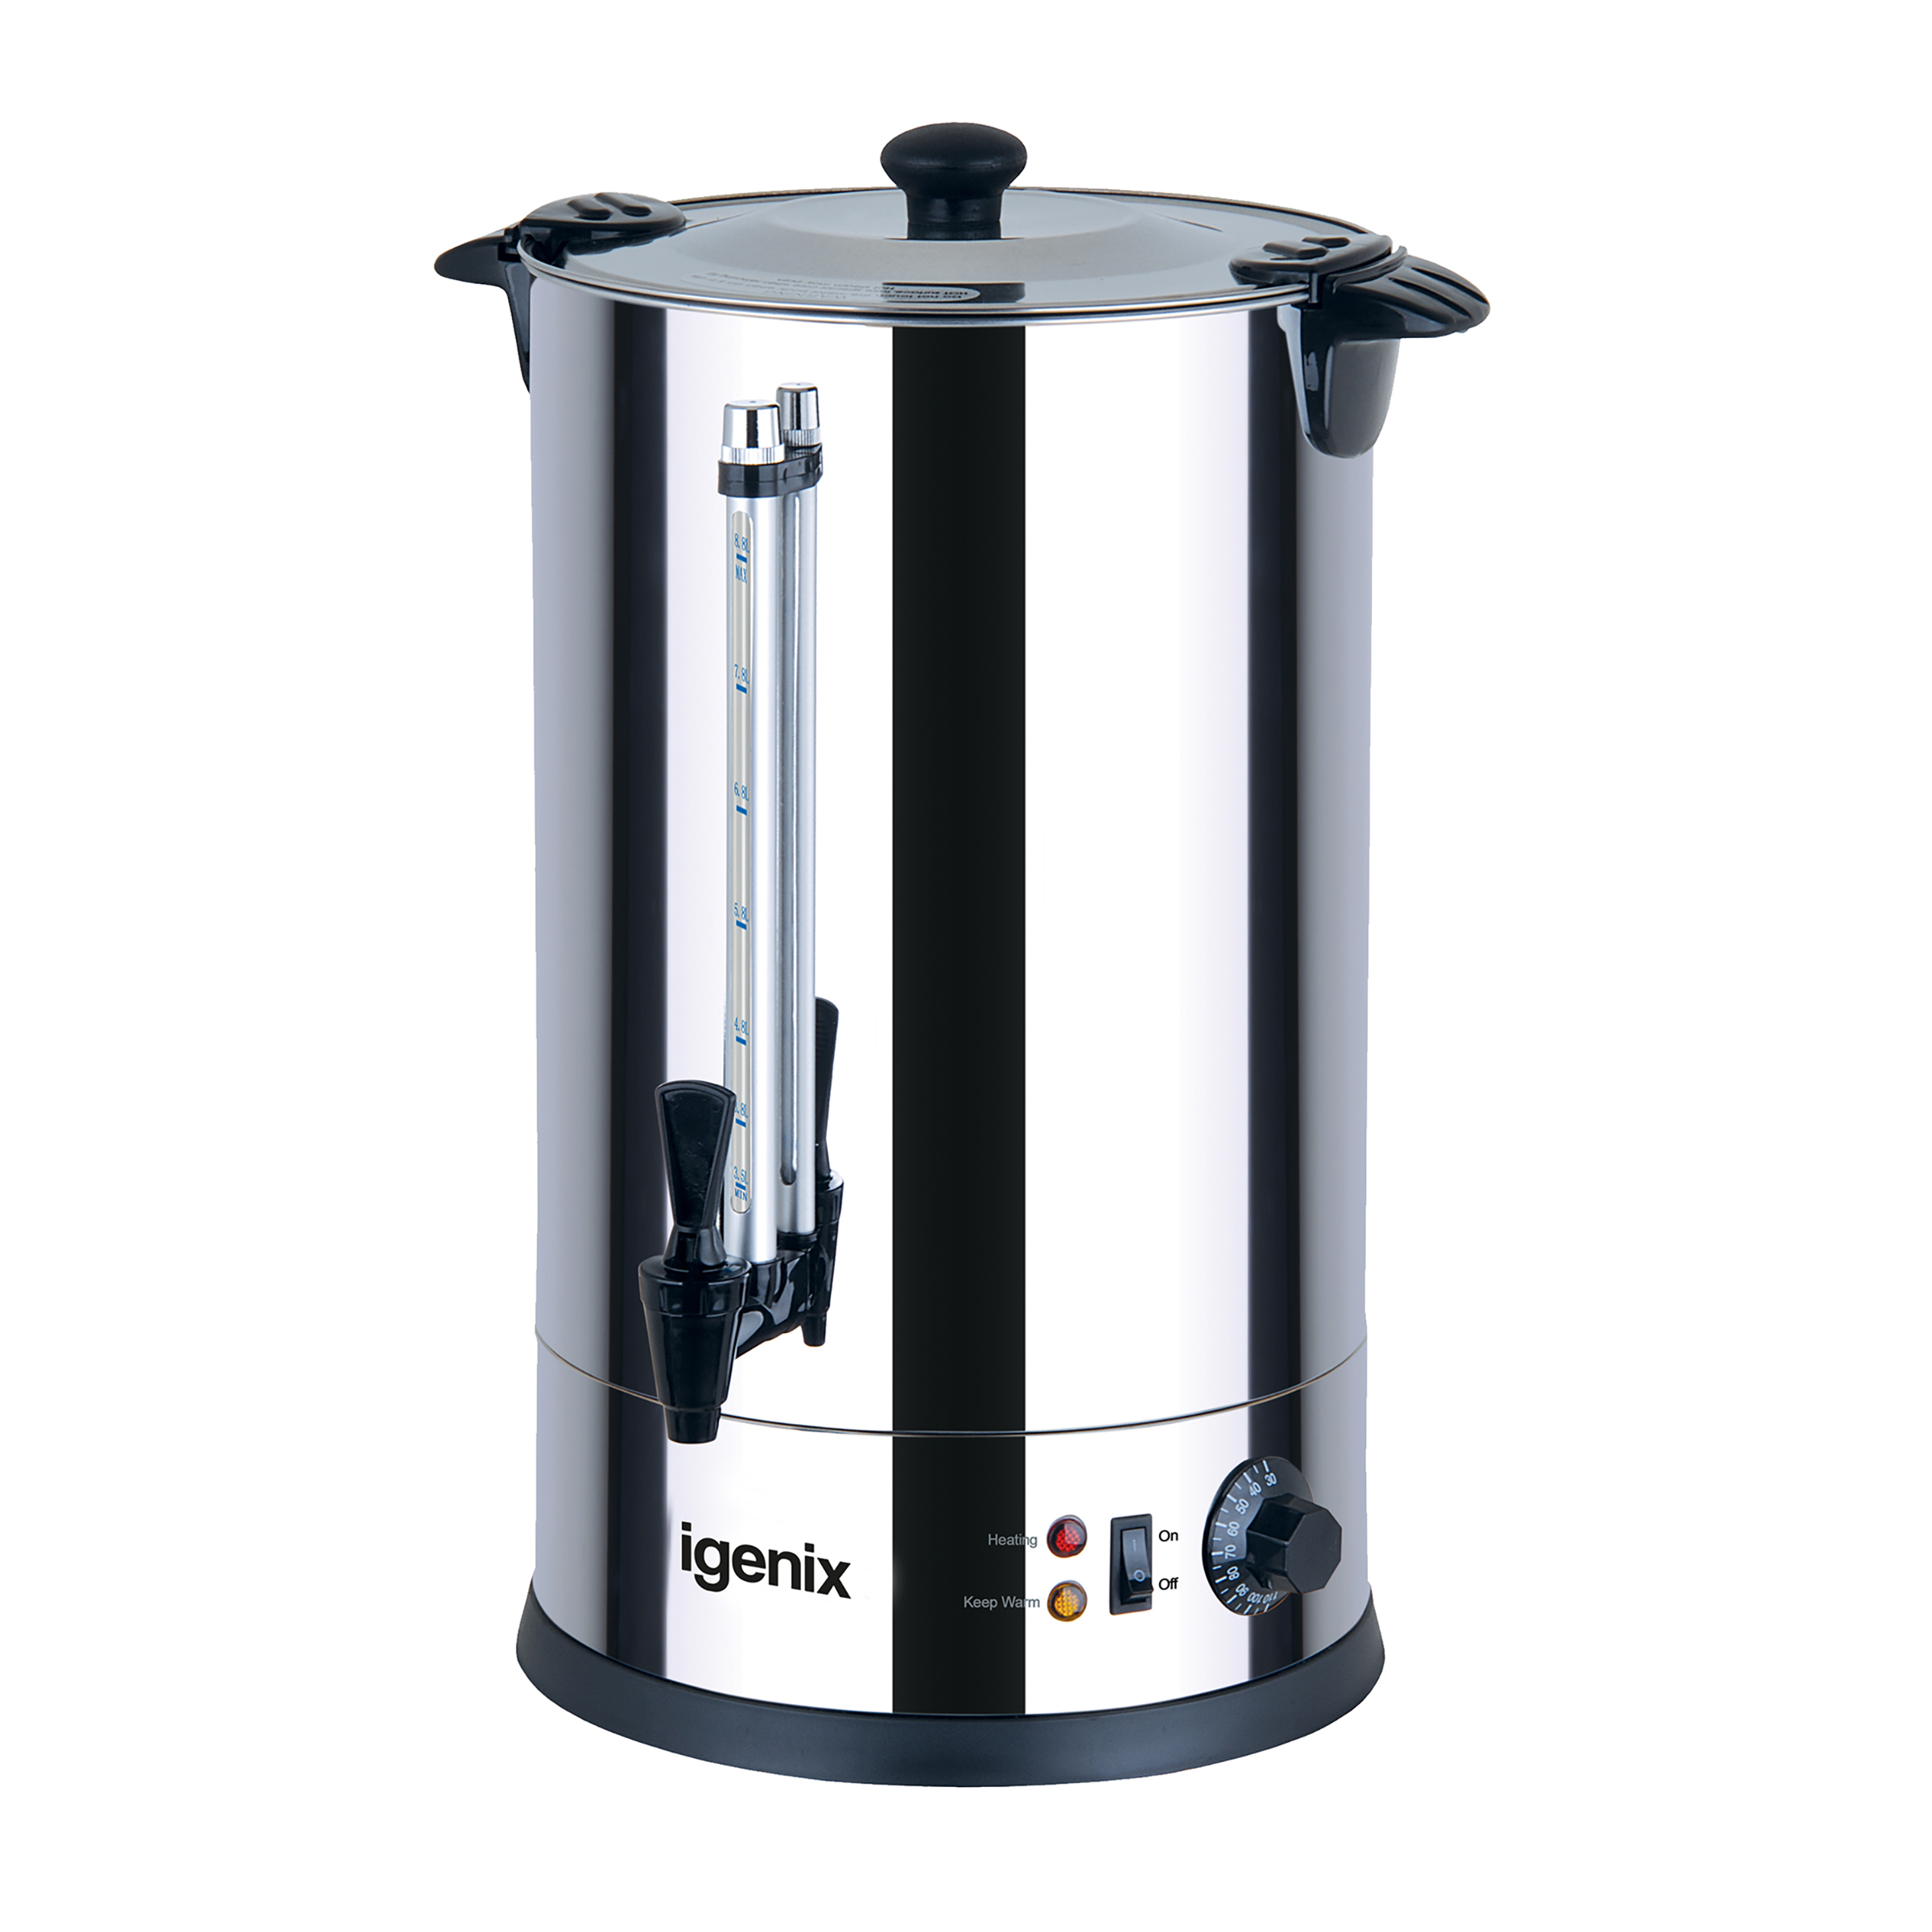 Igenix Catering Urn Locking Lid Water Gauge 1600W 18 Litre Stainless Steel Ref IG4018